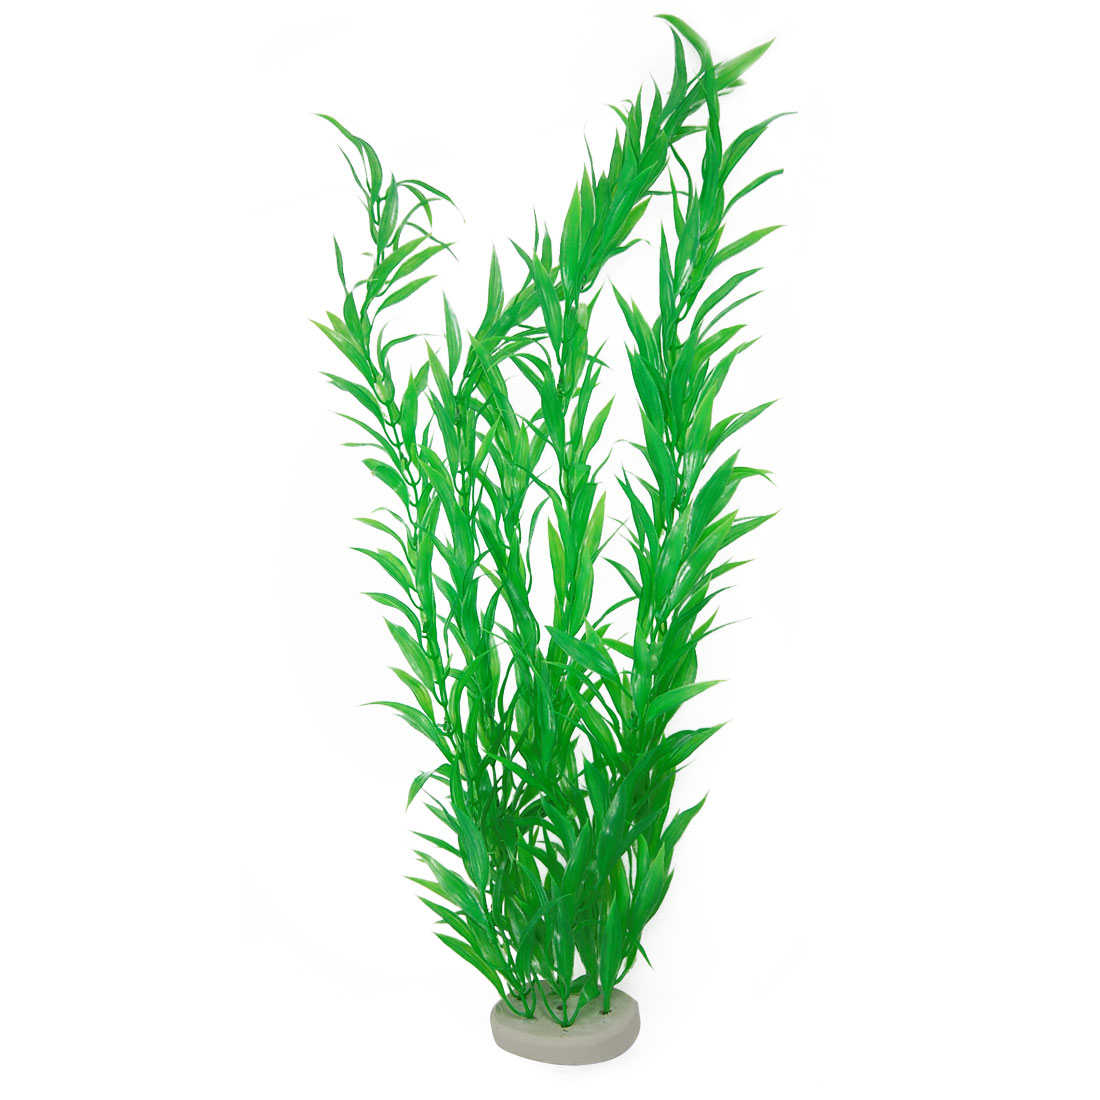 Aquascaping Tank Aquarium 45cm Height Green Plastic Plants